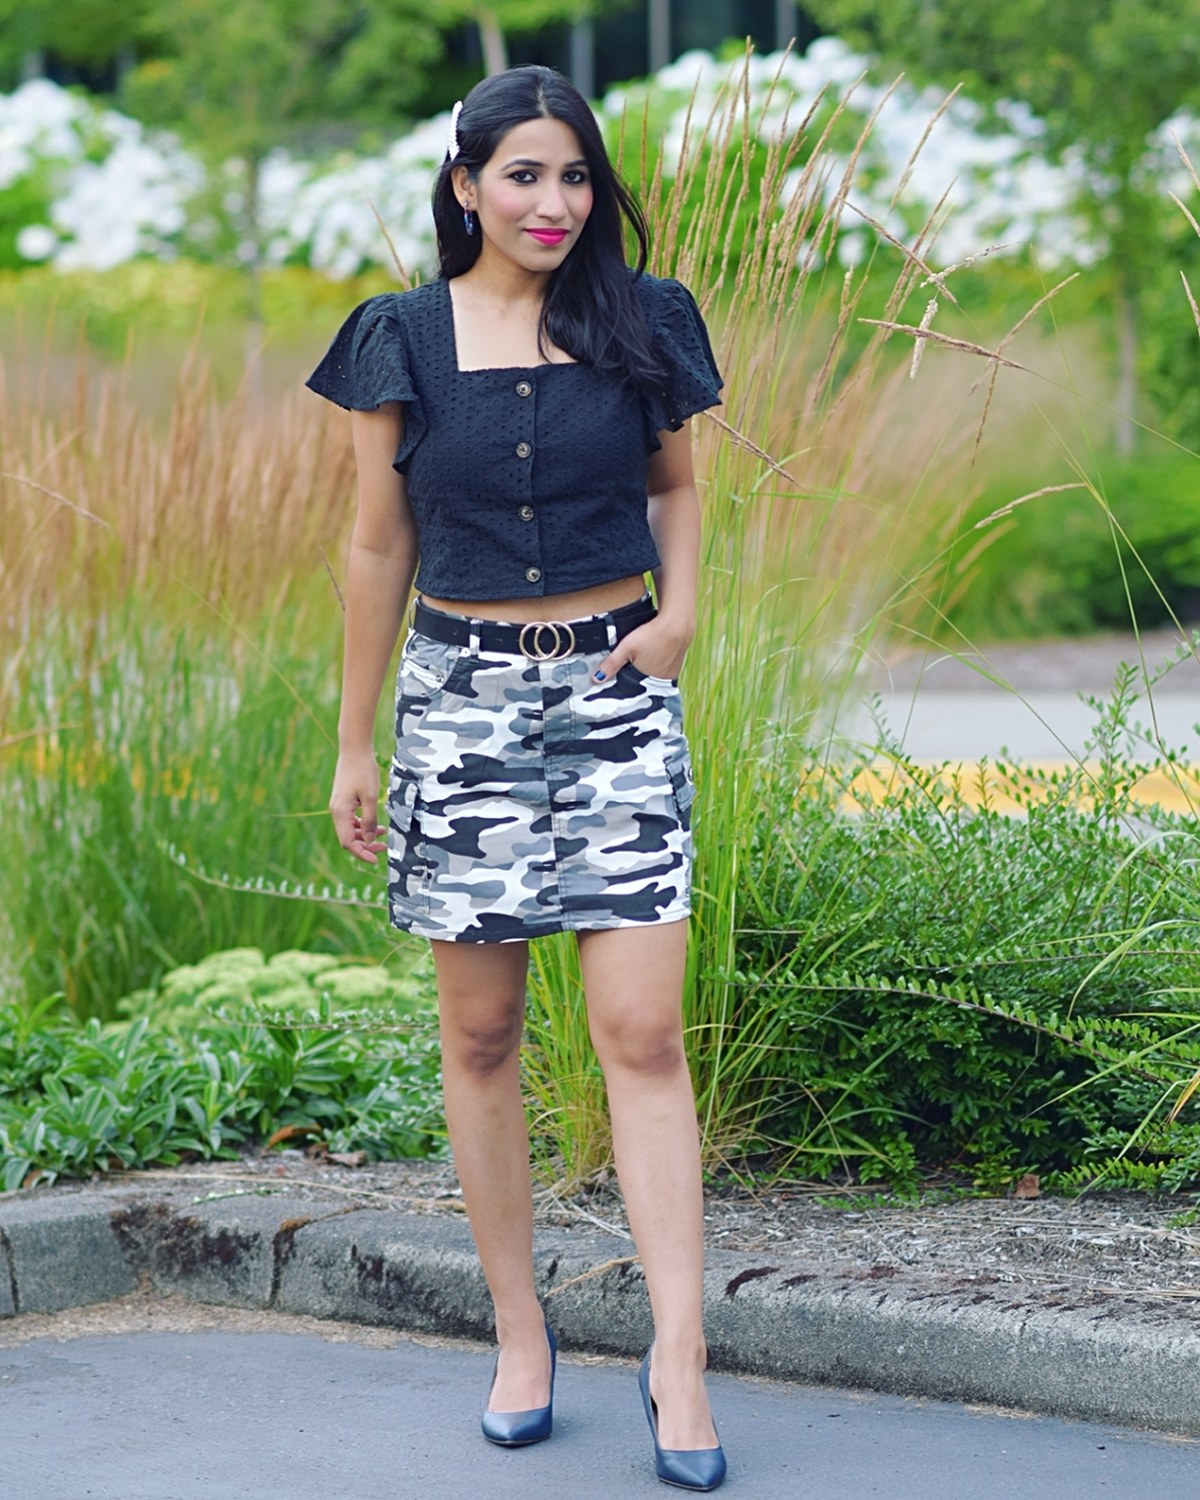 https://femmeluxefinery.com/products/grey-camo-cargo-pockets-skirt-tiana